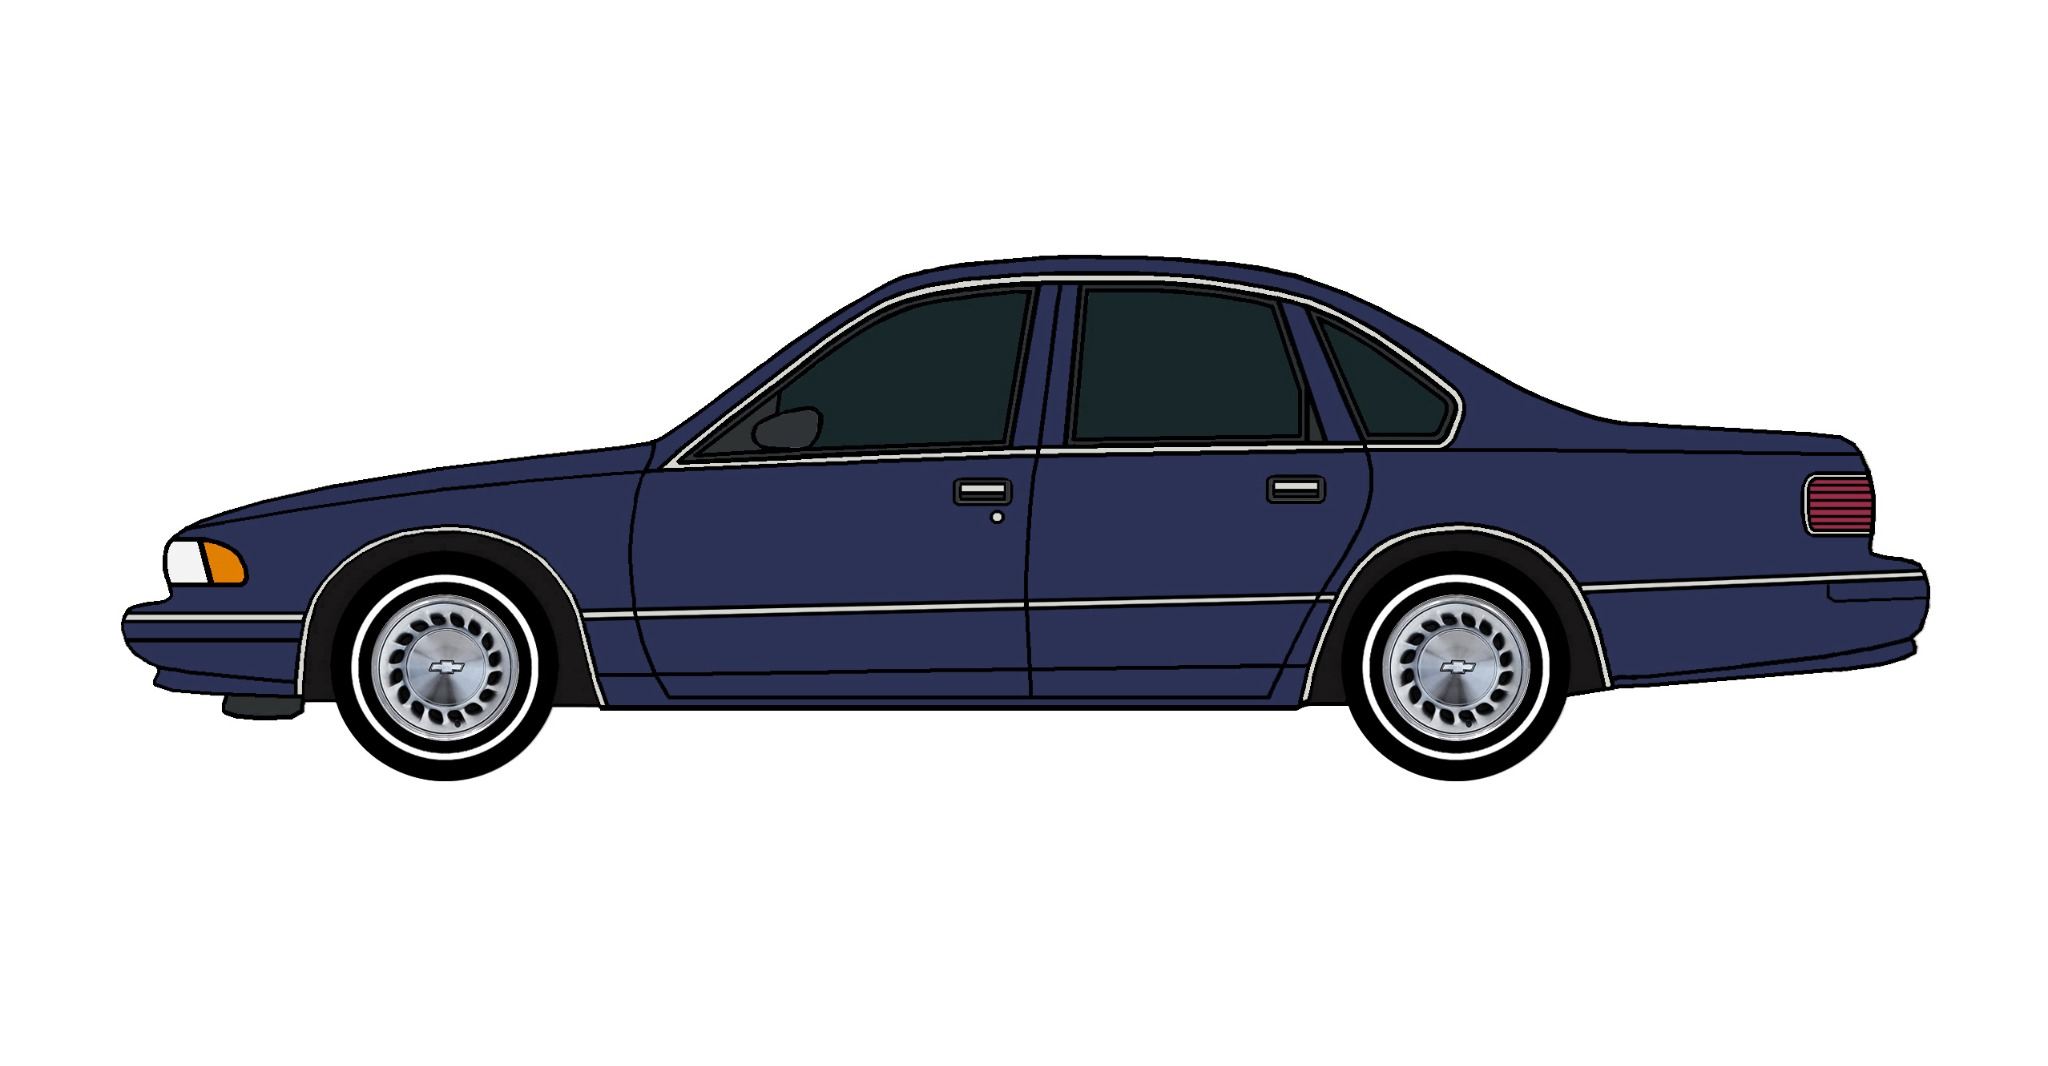 1996 Chevy Caprice PERIWINKLE